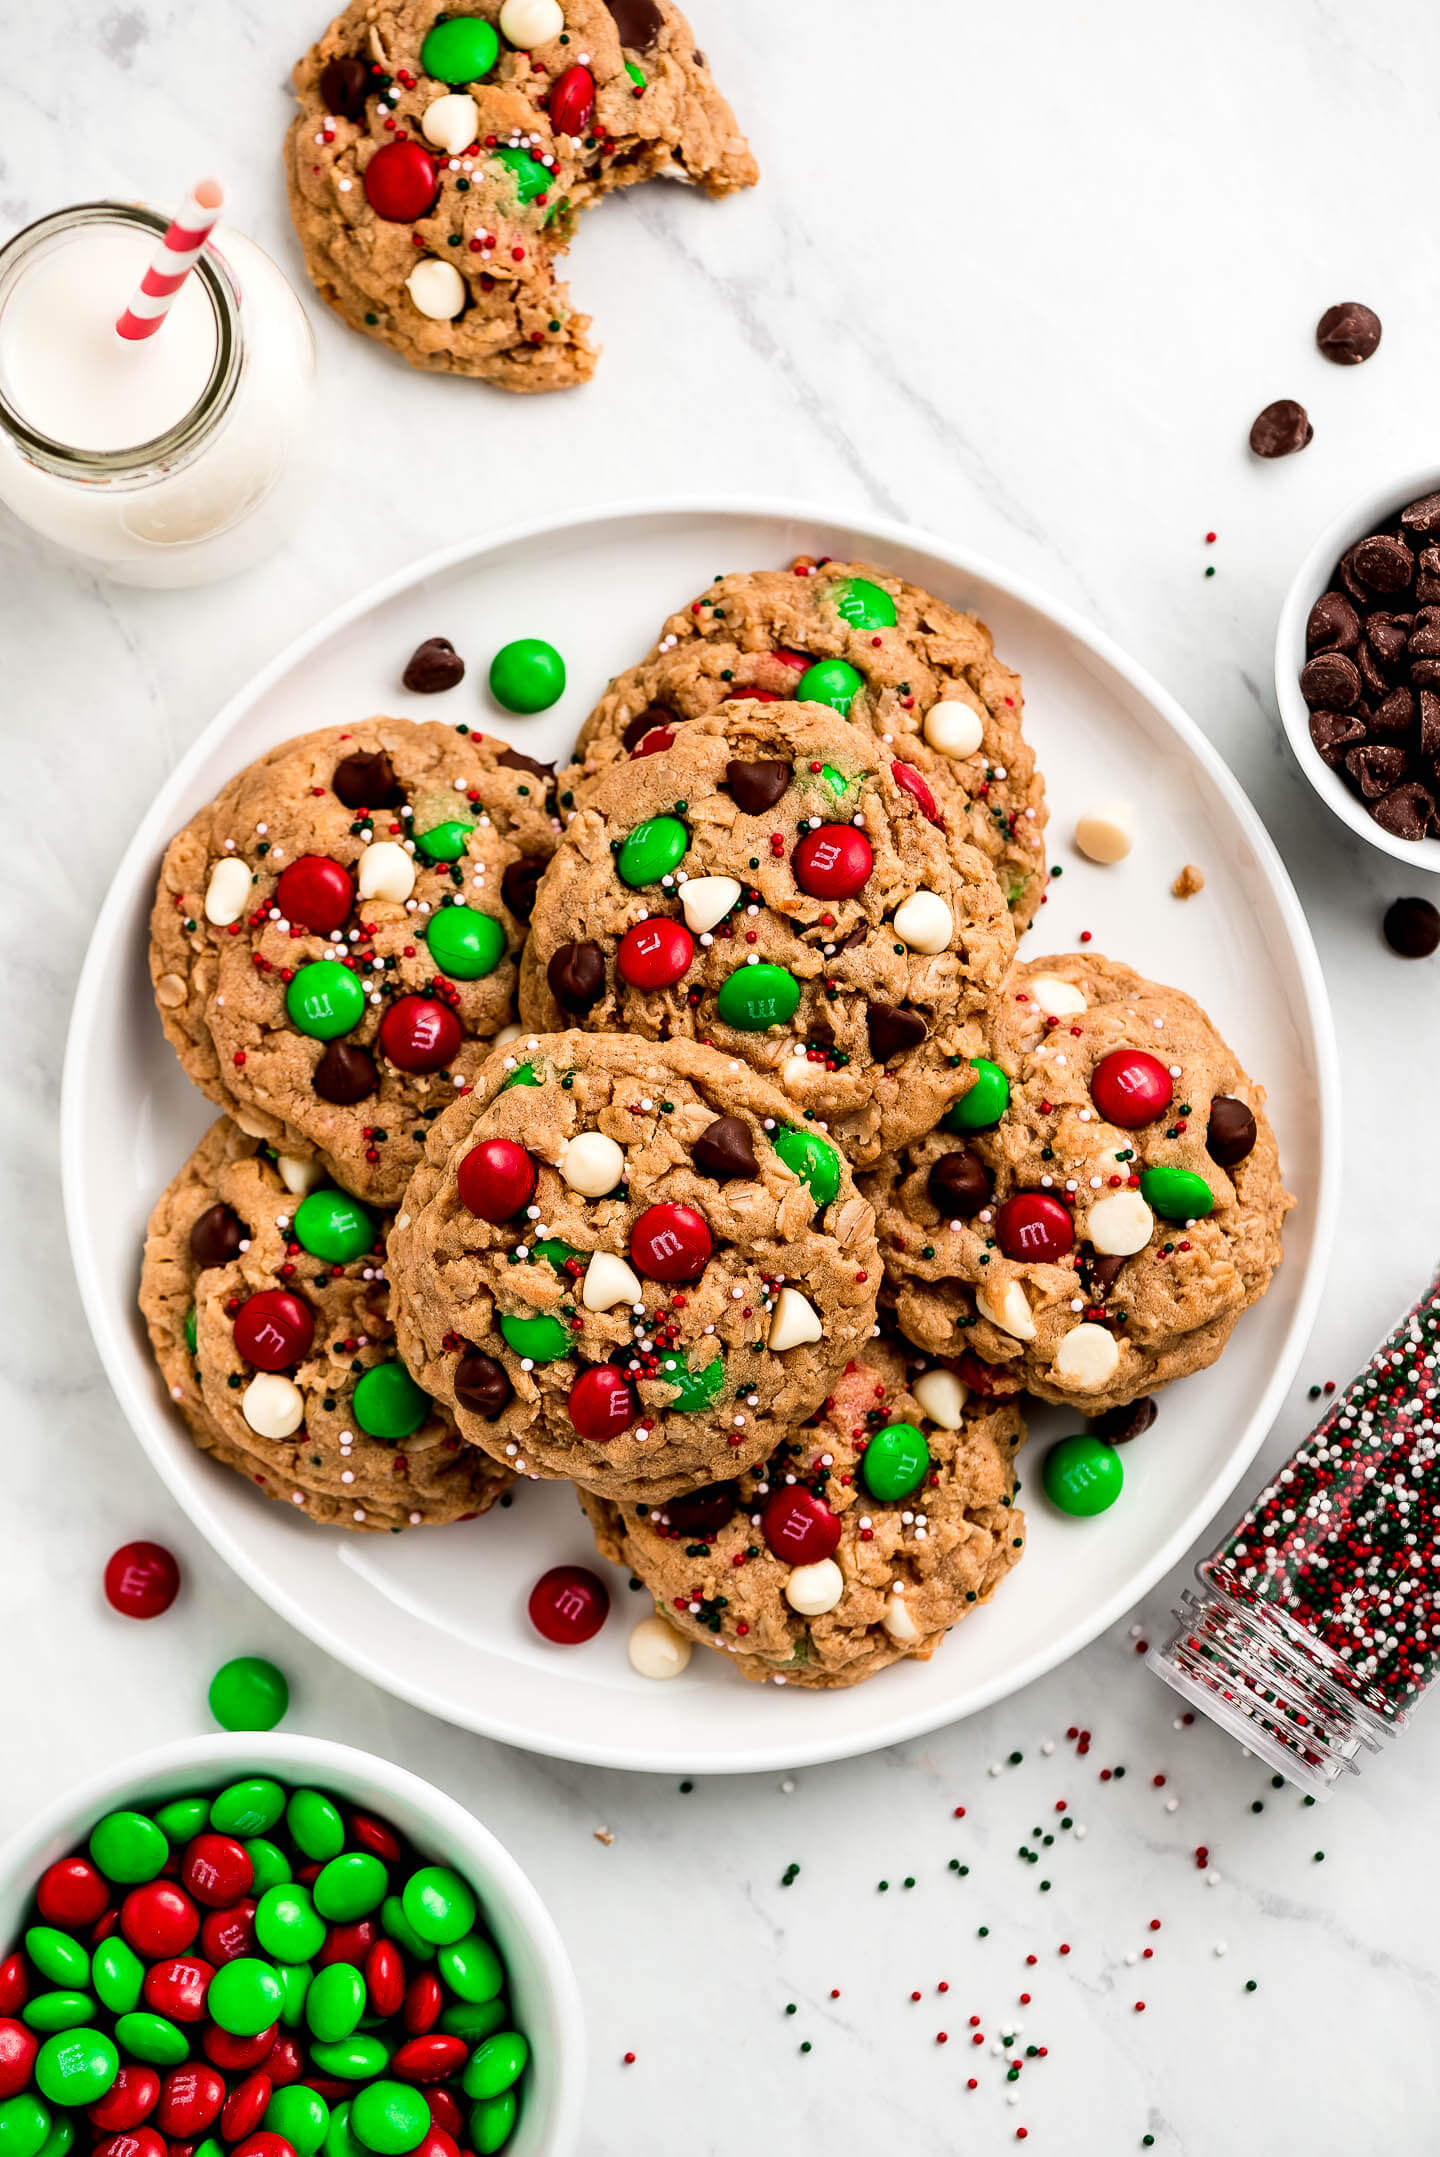 A plate full of Santa Cookies with bowls of chocolate chips, M&M's, sprinkles, and a jar of milk surrounding.